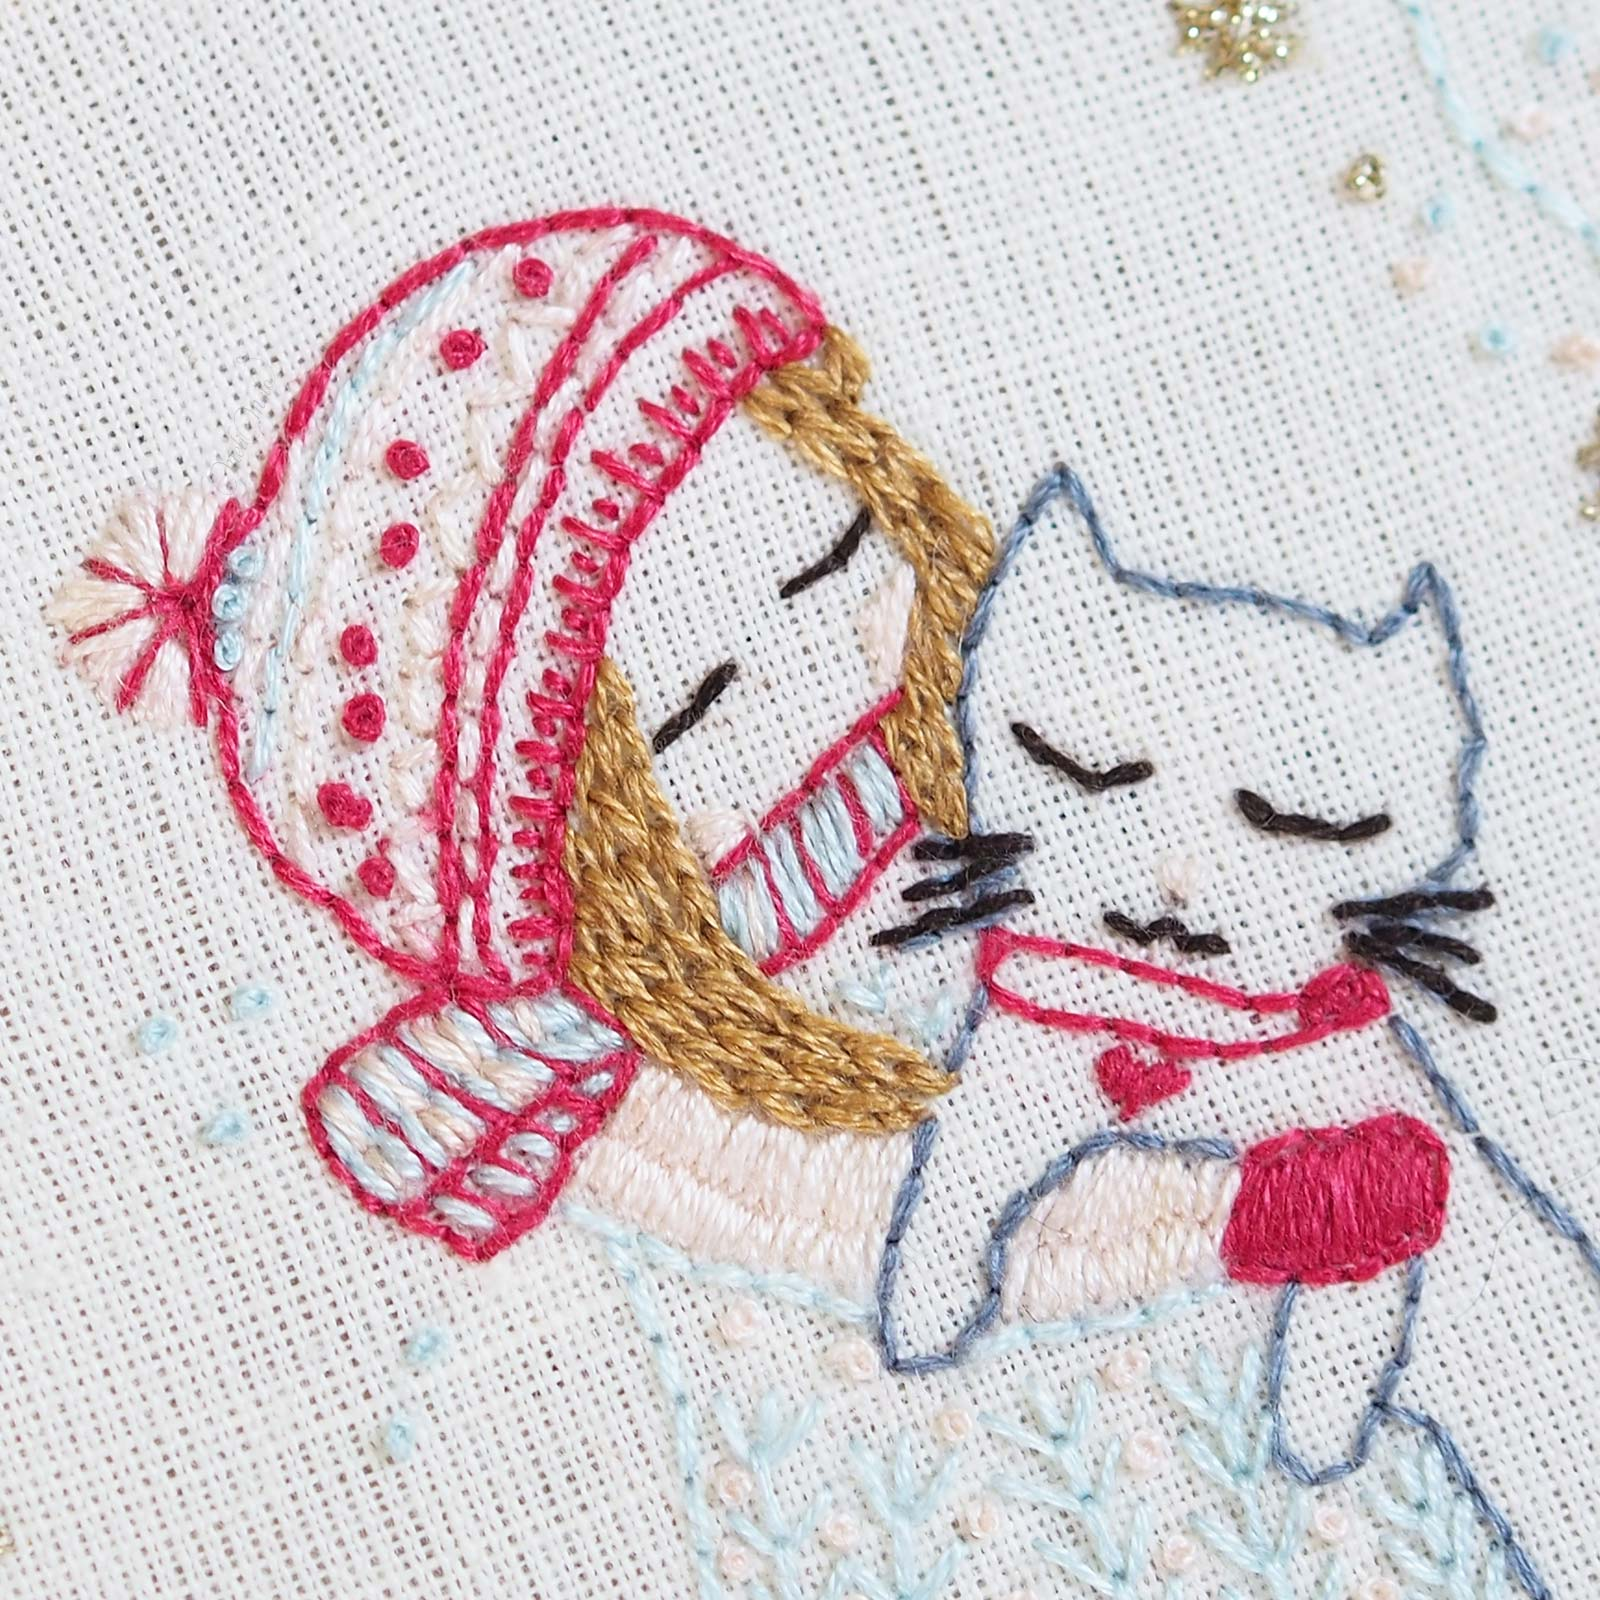 broderie-demoiselle-hiver-chat-point-chainette-laboutiquedemelimelo